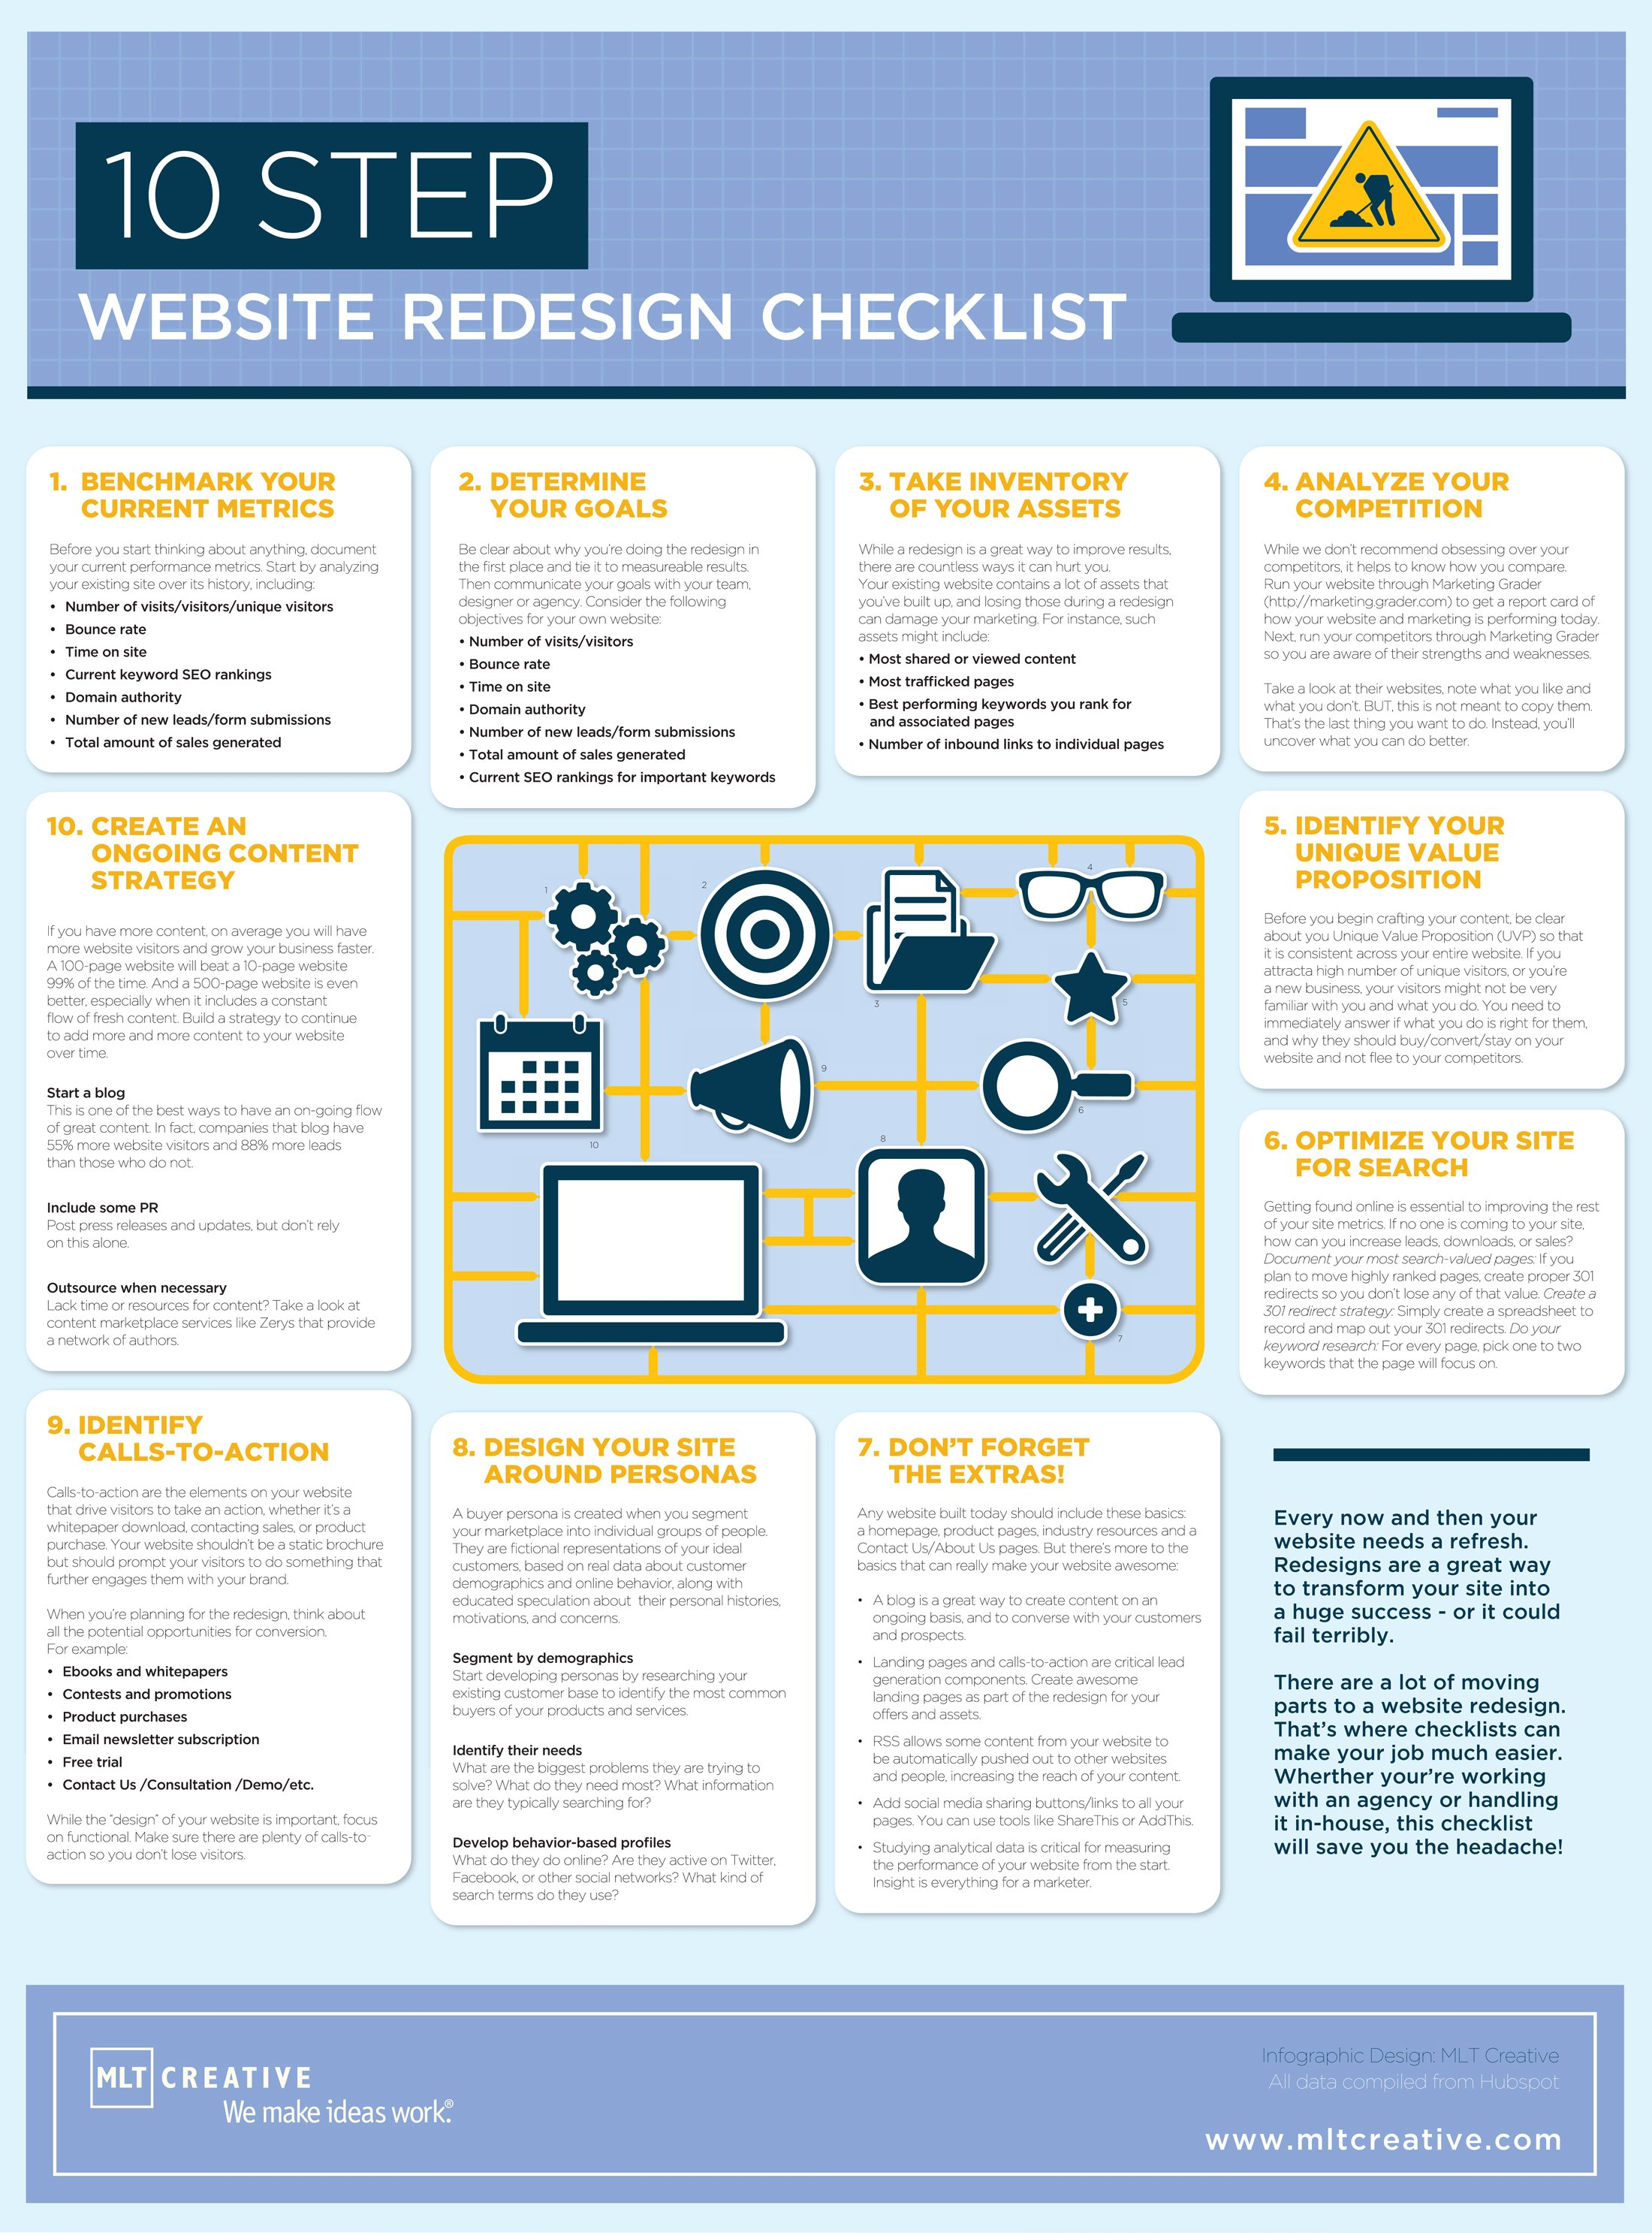 10 Step By Step Spring Makeup Tutorials For Beginners 2016: The Ten-Step Checklist For A Better B2B Website Redesign